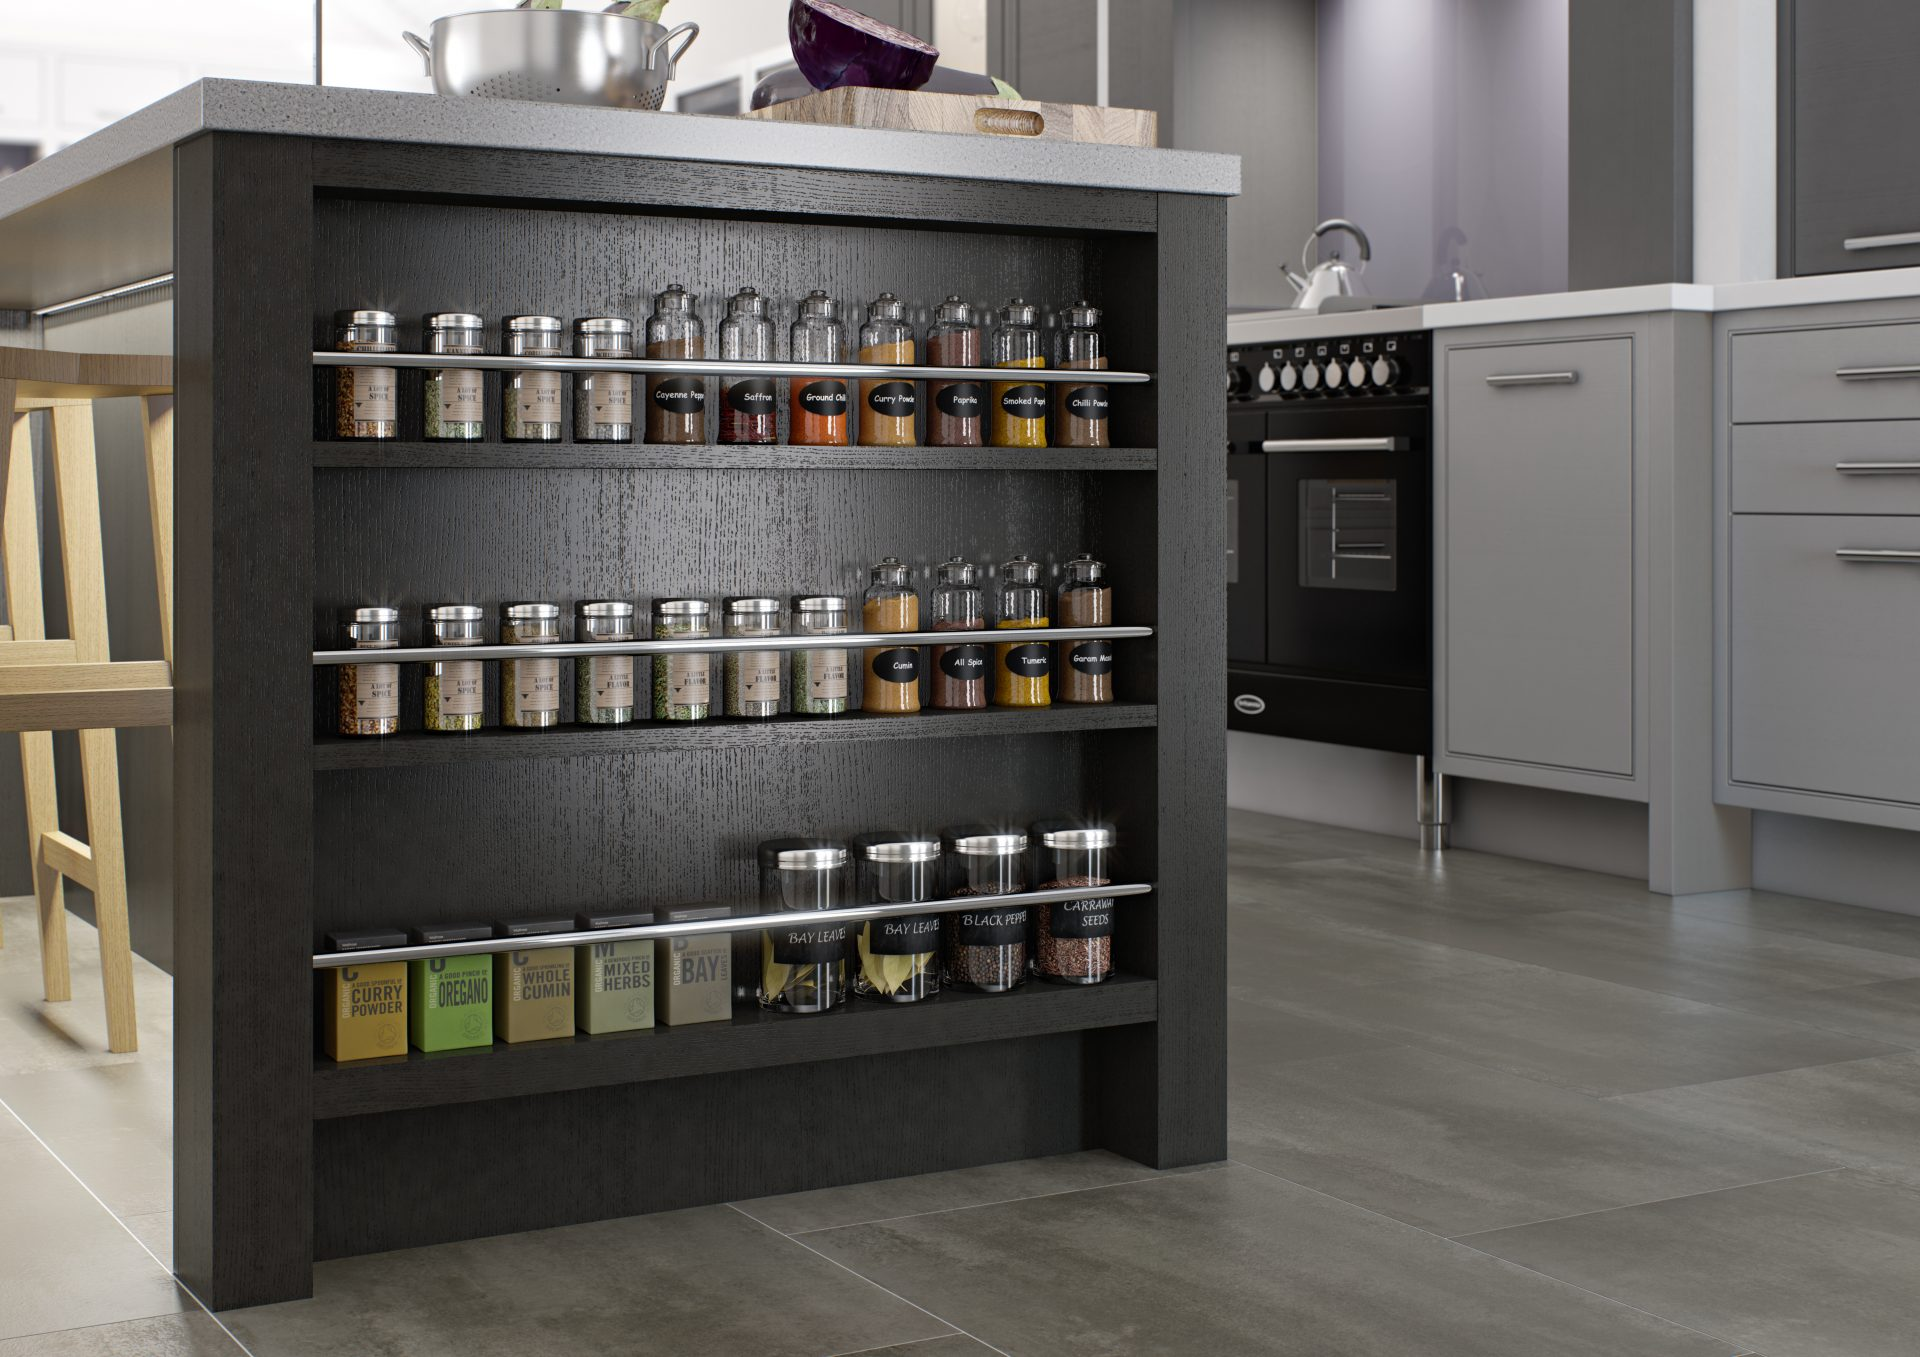 Feature Spice Rack End Cabinet